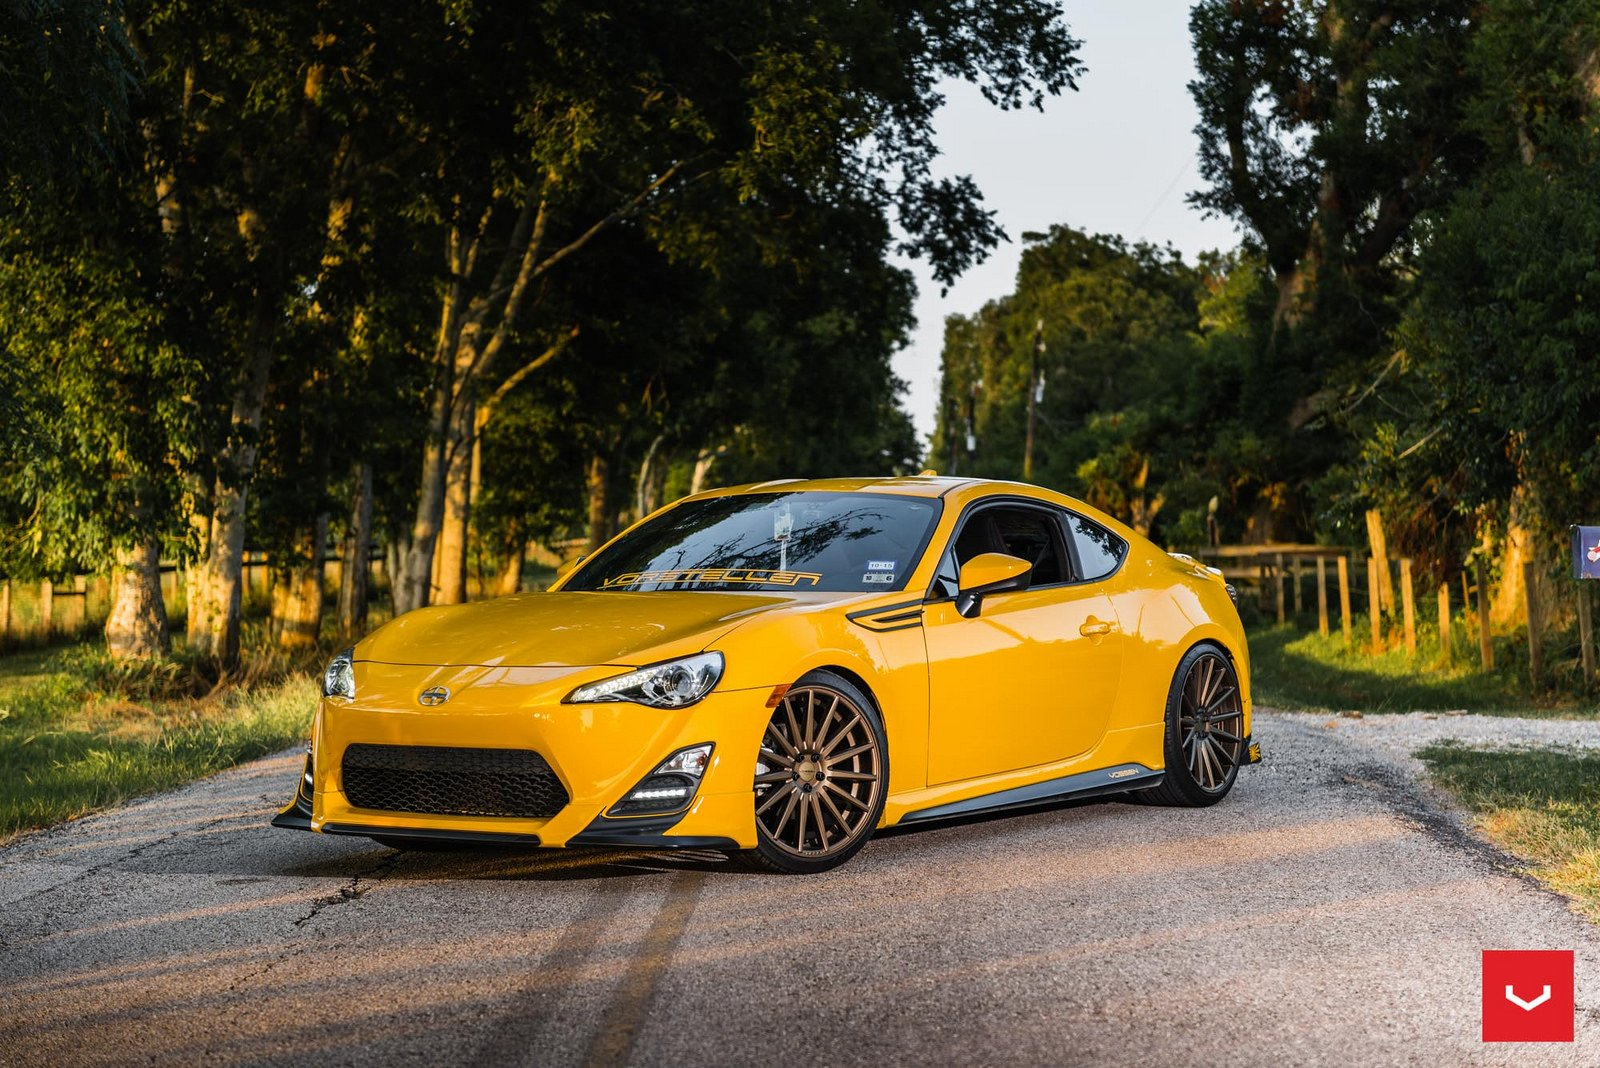 scion frs coupe vossen wheels cars yellow wallpaper. Black Bedroom Furniture Sets. Home Design Ideas